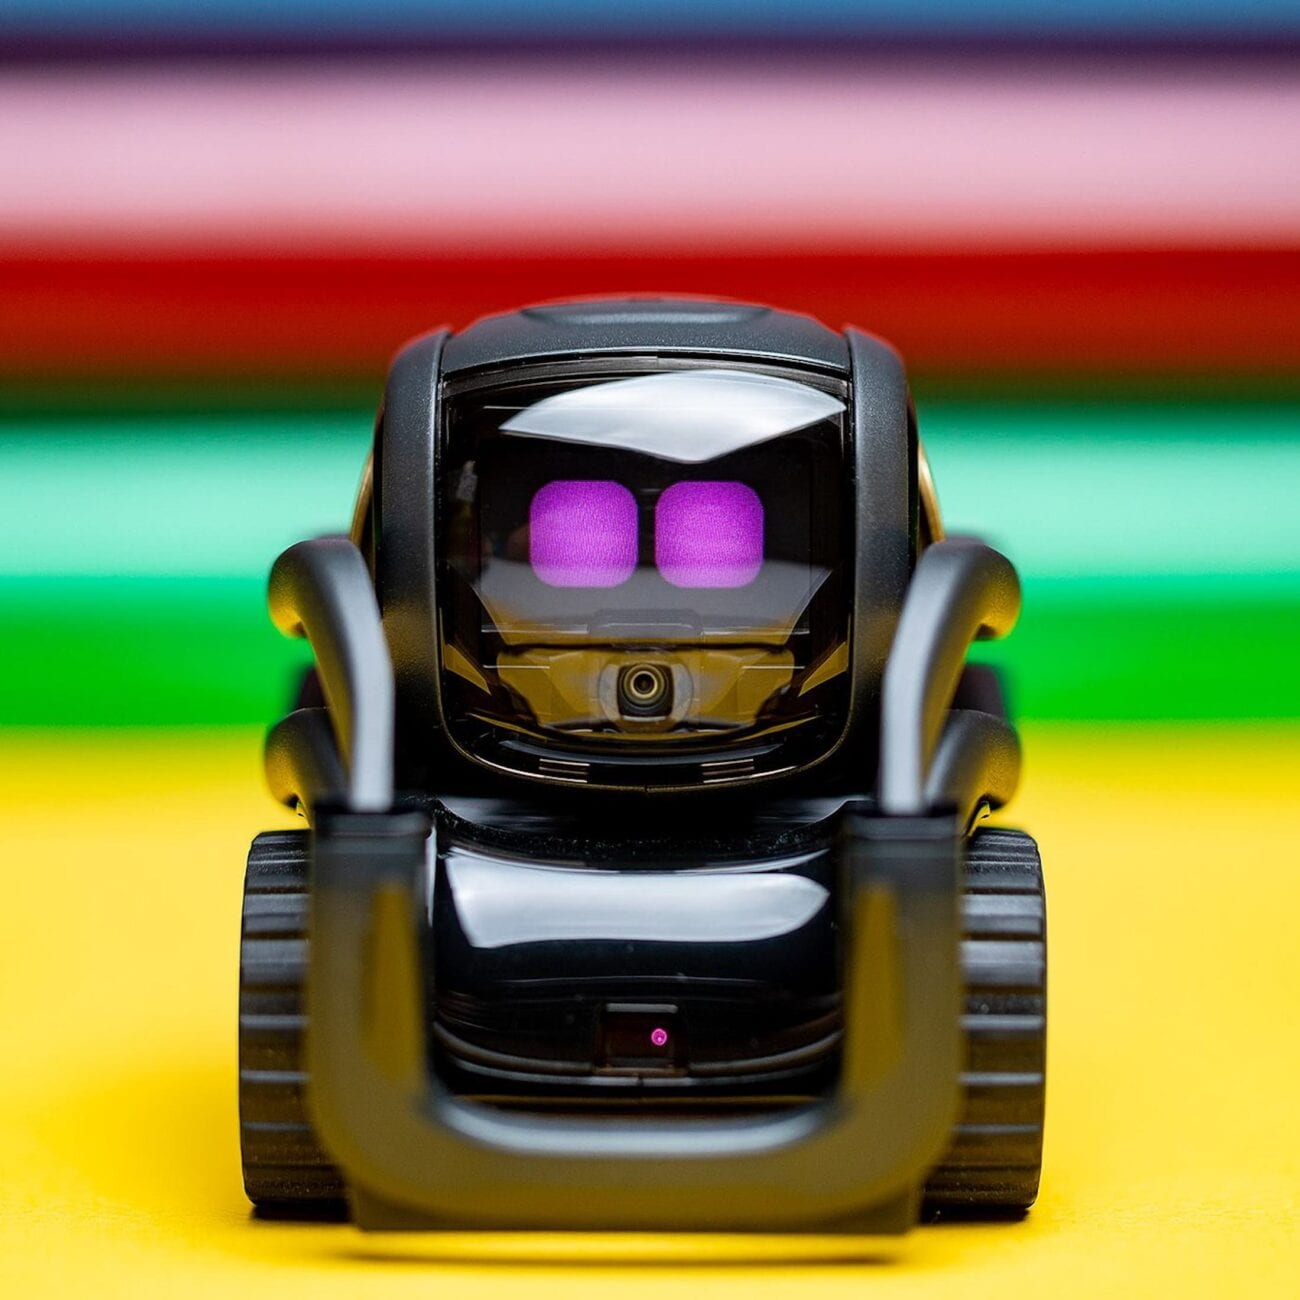 It's as if we are living in one of those sci-fi movies. Here are some real life robots that act as assistants in your home. Here's what we know.